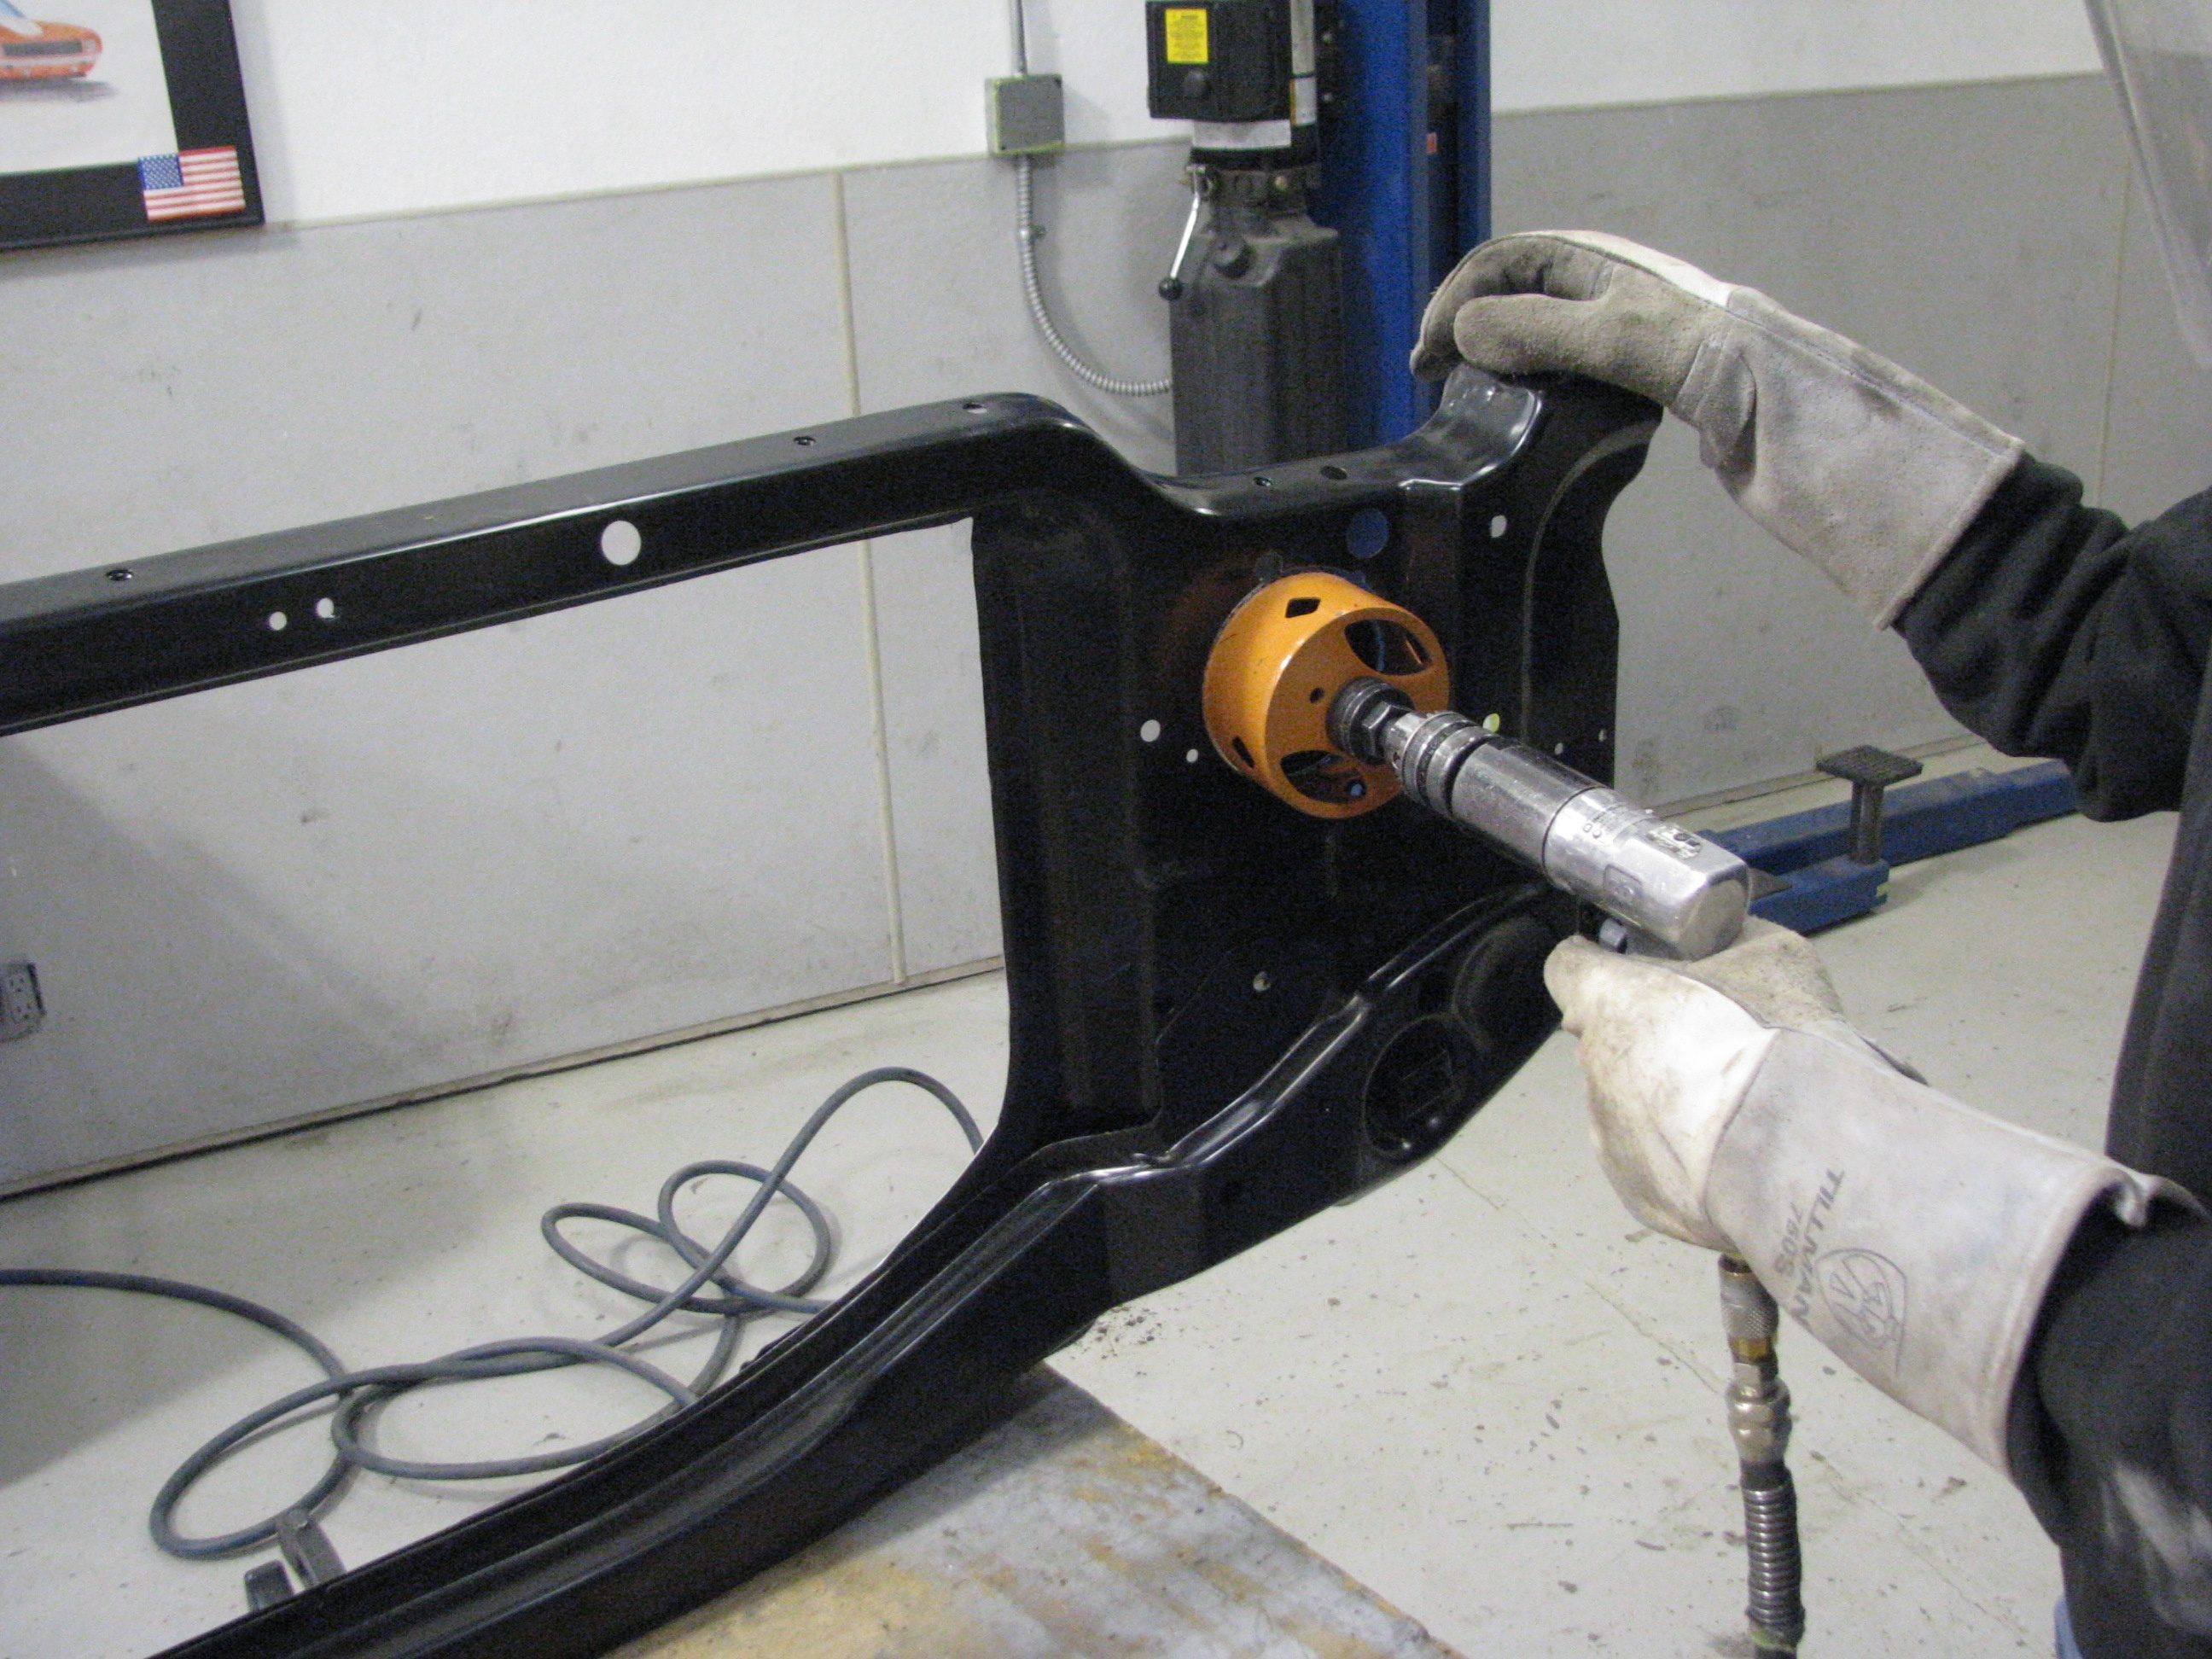 Fixing the Carbon Camaro